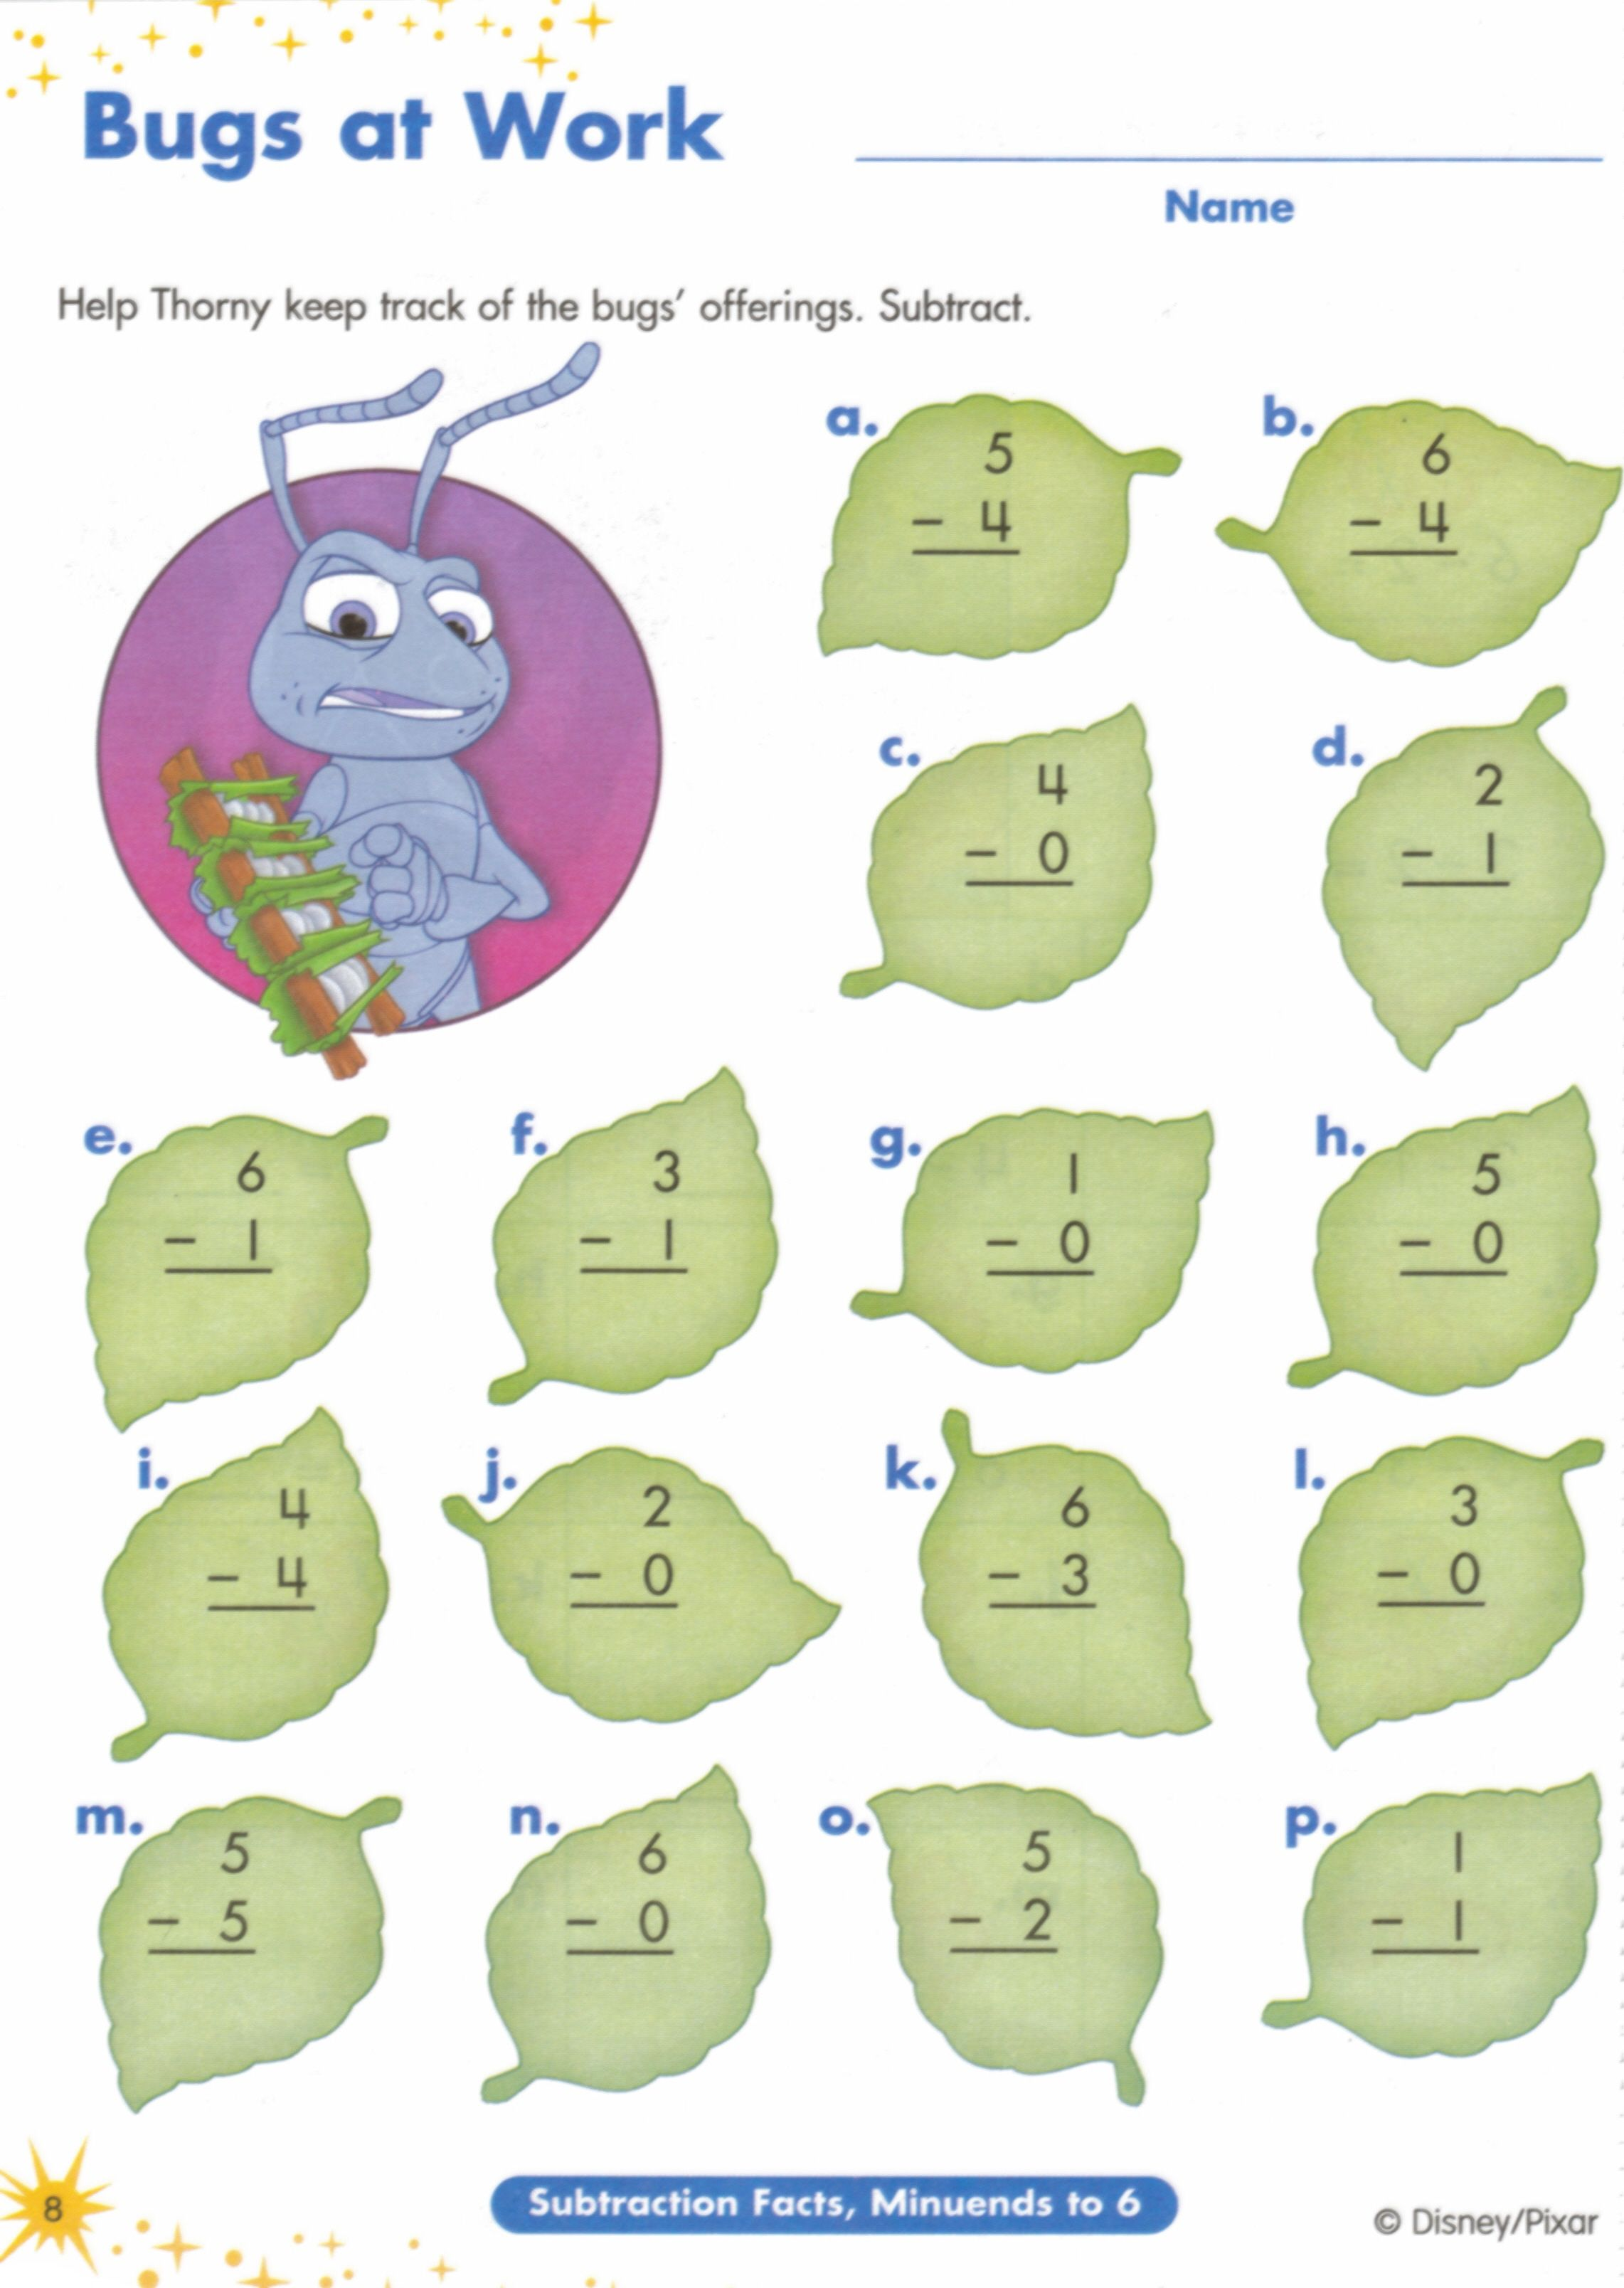 Weirdmailus  Unique  Images About Worksheets On Pinterest  Fun Facts For Kids  With Remarkable  Images About Worksheets On Pinterest  Fun Facts For Kids Earth Day Worksheets And Jungles With Cool Parent Function Worksheet Also Fraction Worksheets Pdf In Addition Spanish Numbers Worksheet And Emotional Regulation Worksheets As Well As Chemistry Worksheet Lewis Dot Structures Additionally Worksheets Works From Pinterestcom With Weirdmailus  Remarkable  Images About Worksheets On Pinterest  Fun Facts For Kids  With Cool  Images About Worksheets On Pinterest  Fun Facts For Kids Earth Day Worksheets And Jungles And Unique Parent Function Worksheet Also Fraction Worksheets Pdf In Addition Spanish Numbers Worksheet From Pinterestcom